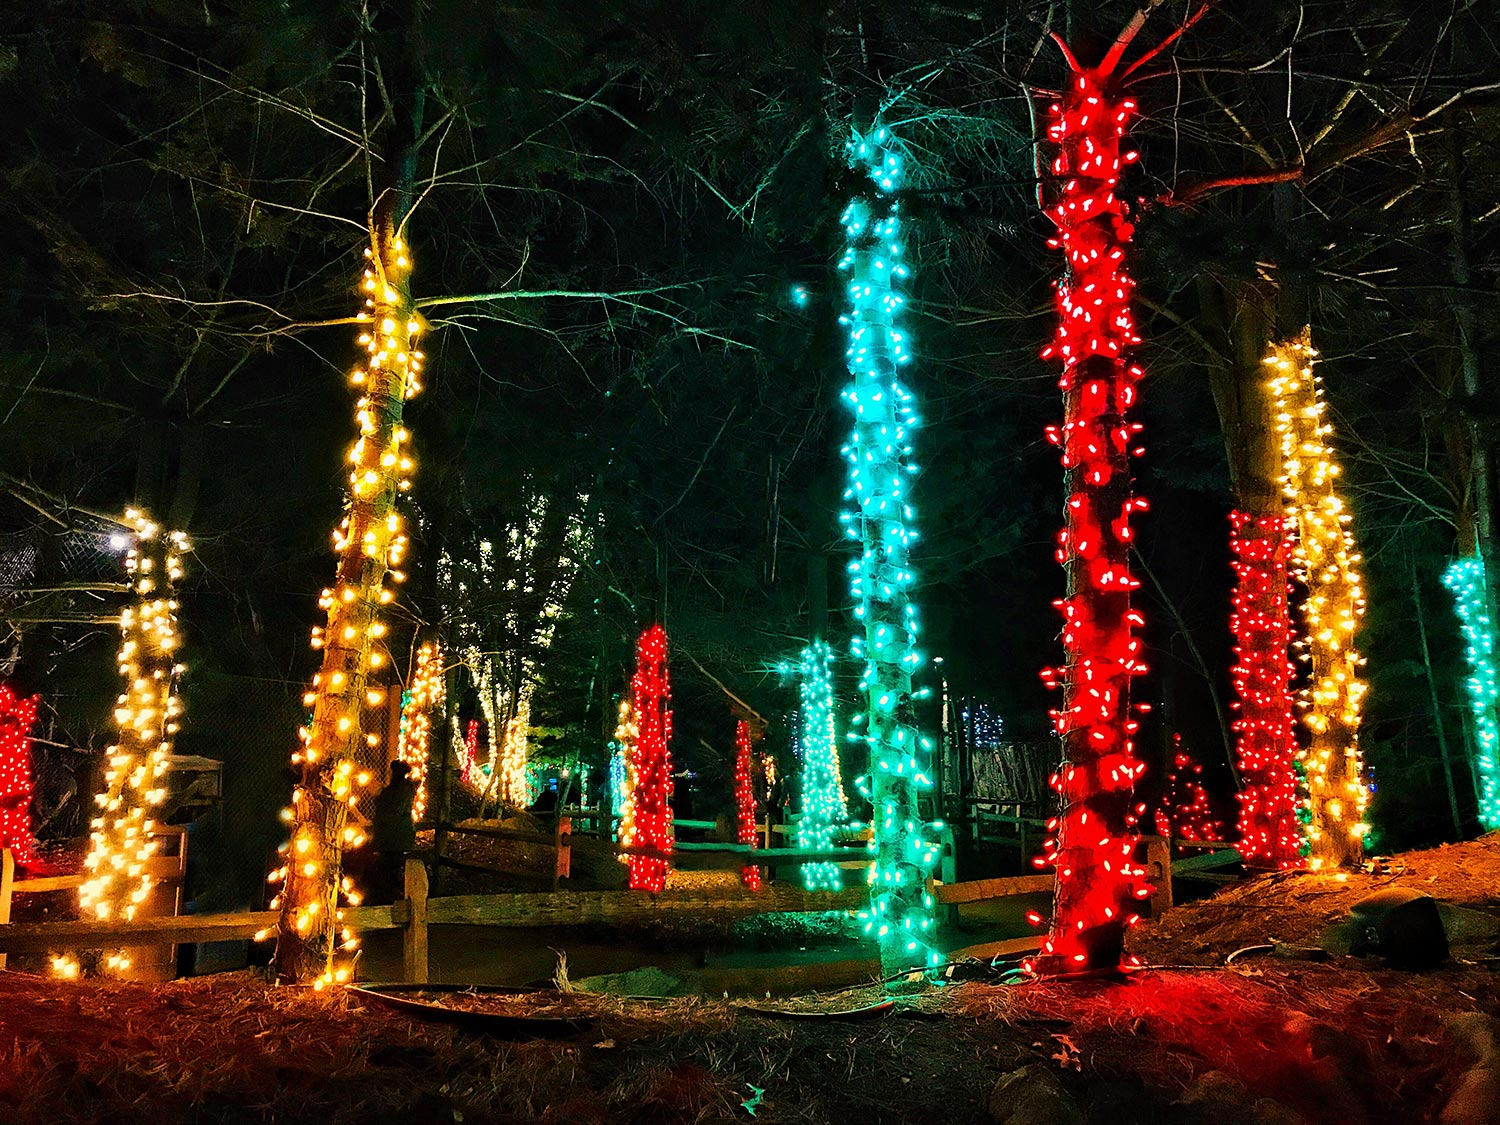 Stone Zoo Holiday ZooLights | Stephen Grant Photography